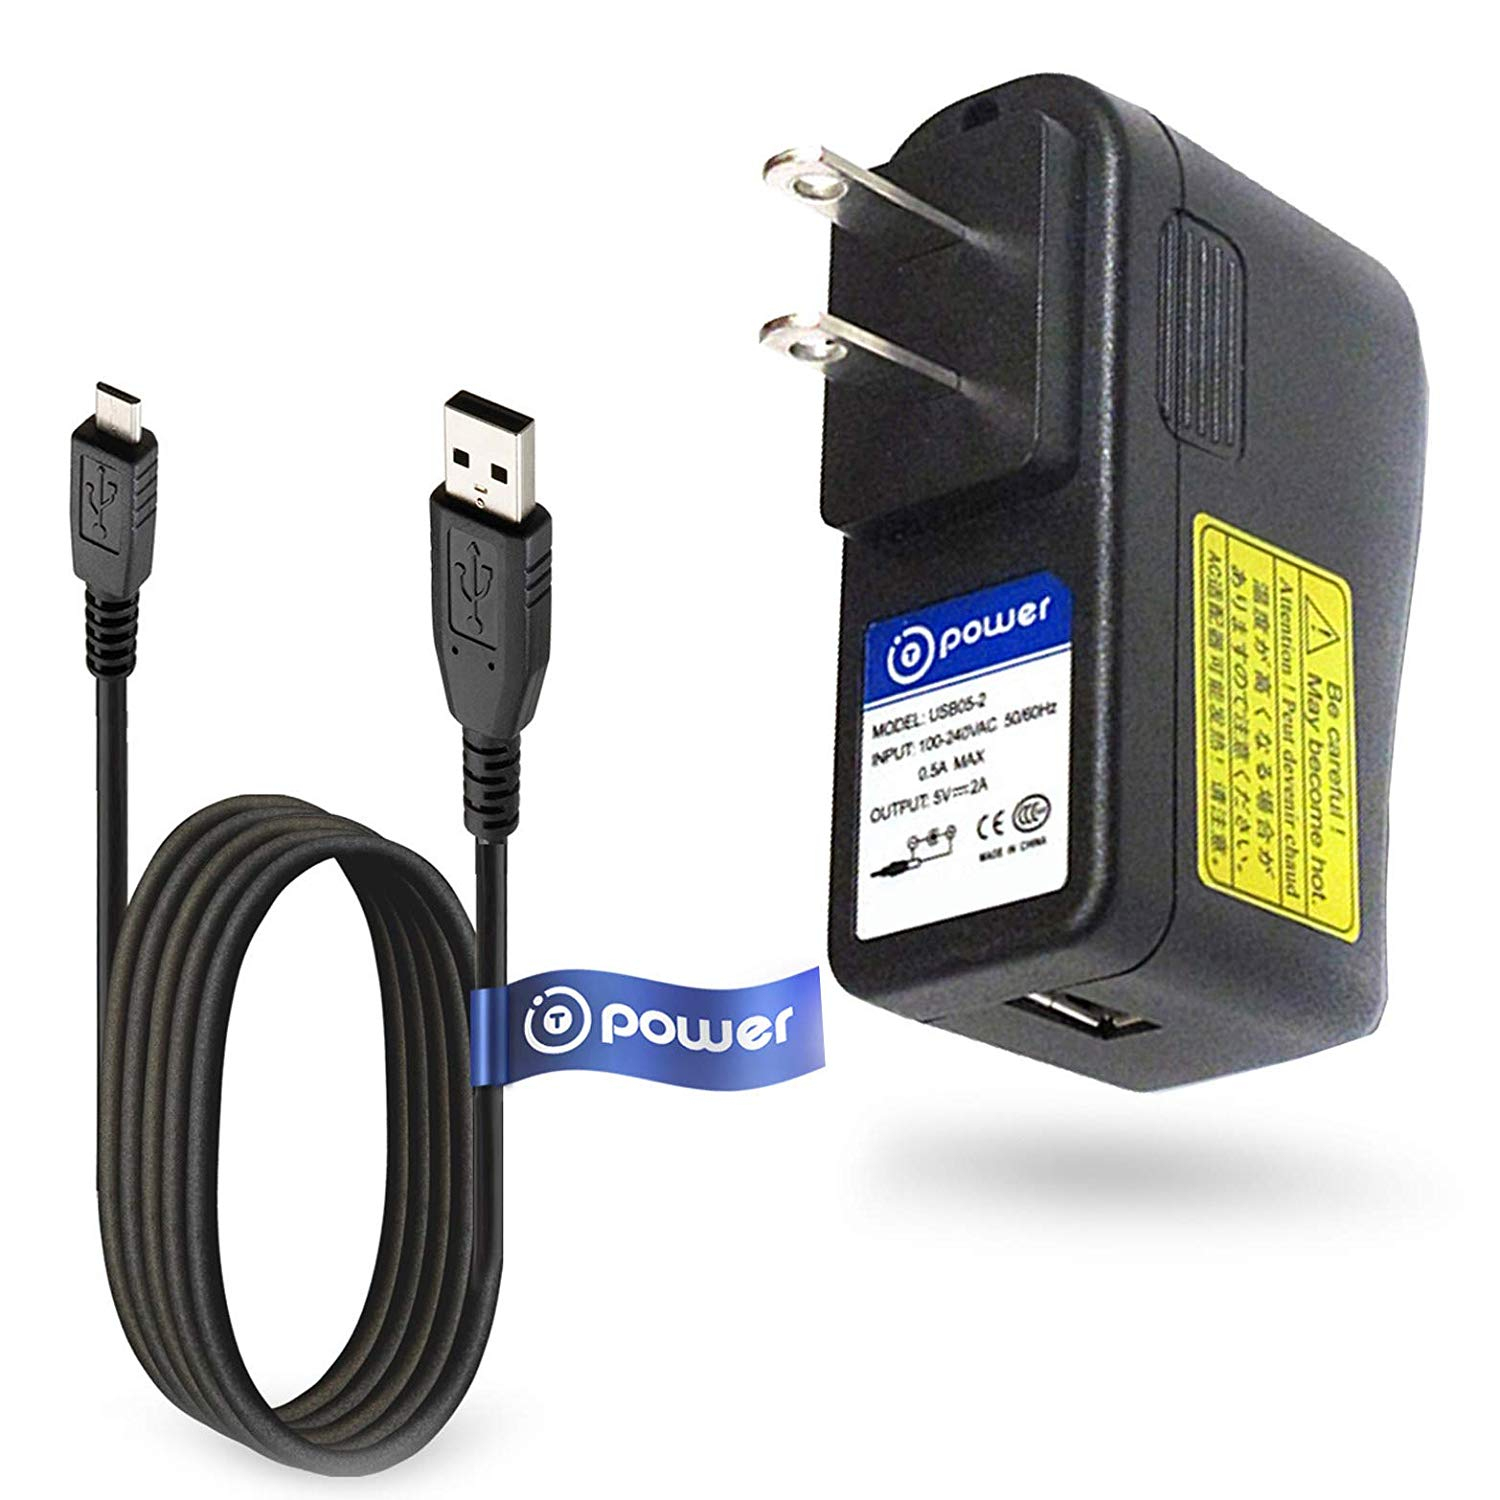 Cheap Magellan Gps Usb Cable, Find Magellan Gps Usb Cable Deals On - Magellan Gps Usb Wiring Diagram